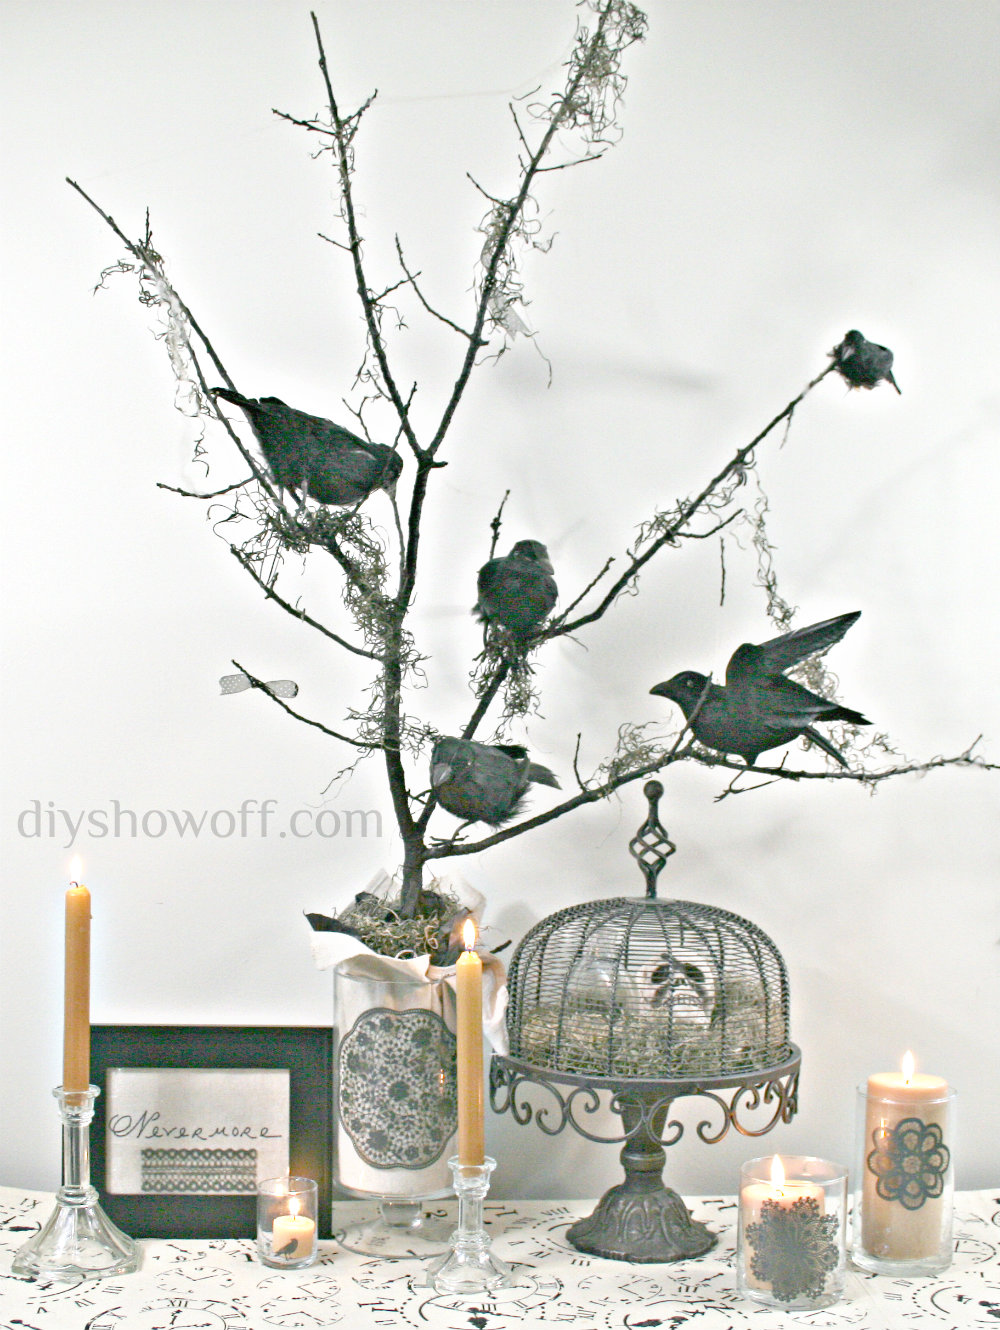 Tree branches for crafts - Diy Halloween Nevermore Tree